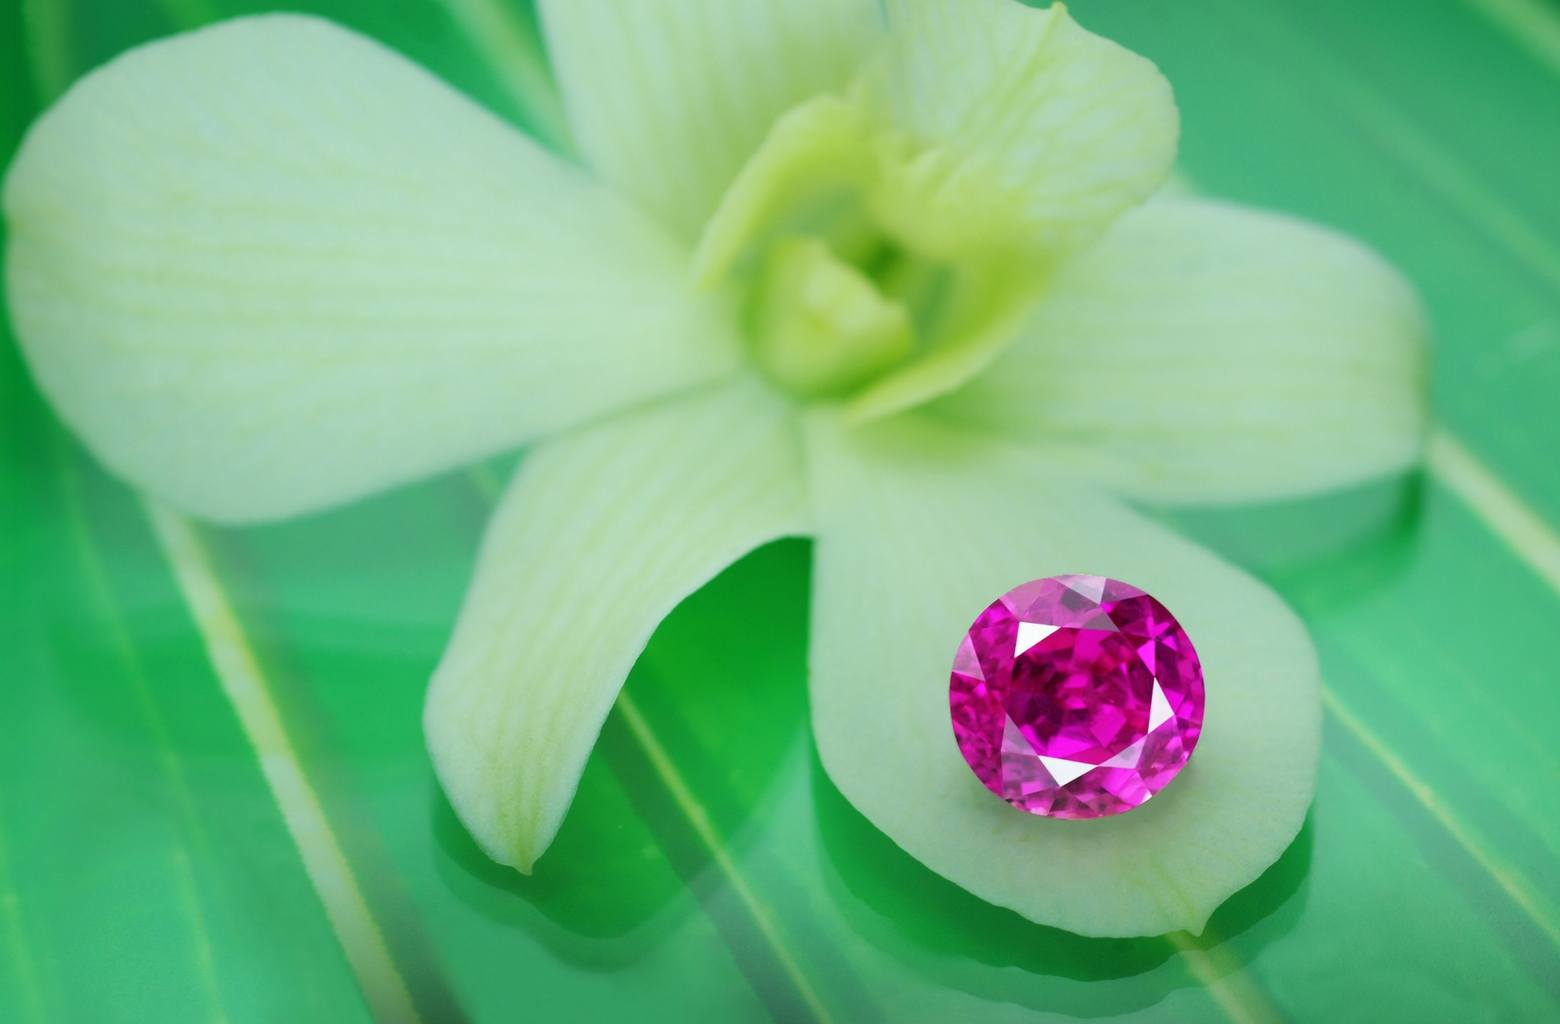 about 8 carat  unheated vivid pink Sapphire from Burma